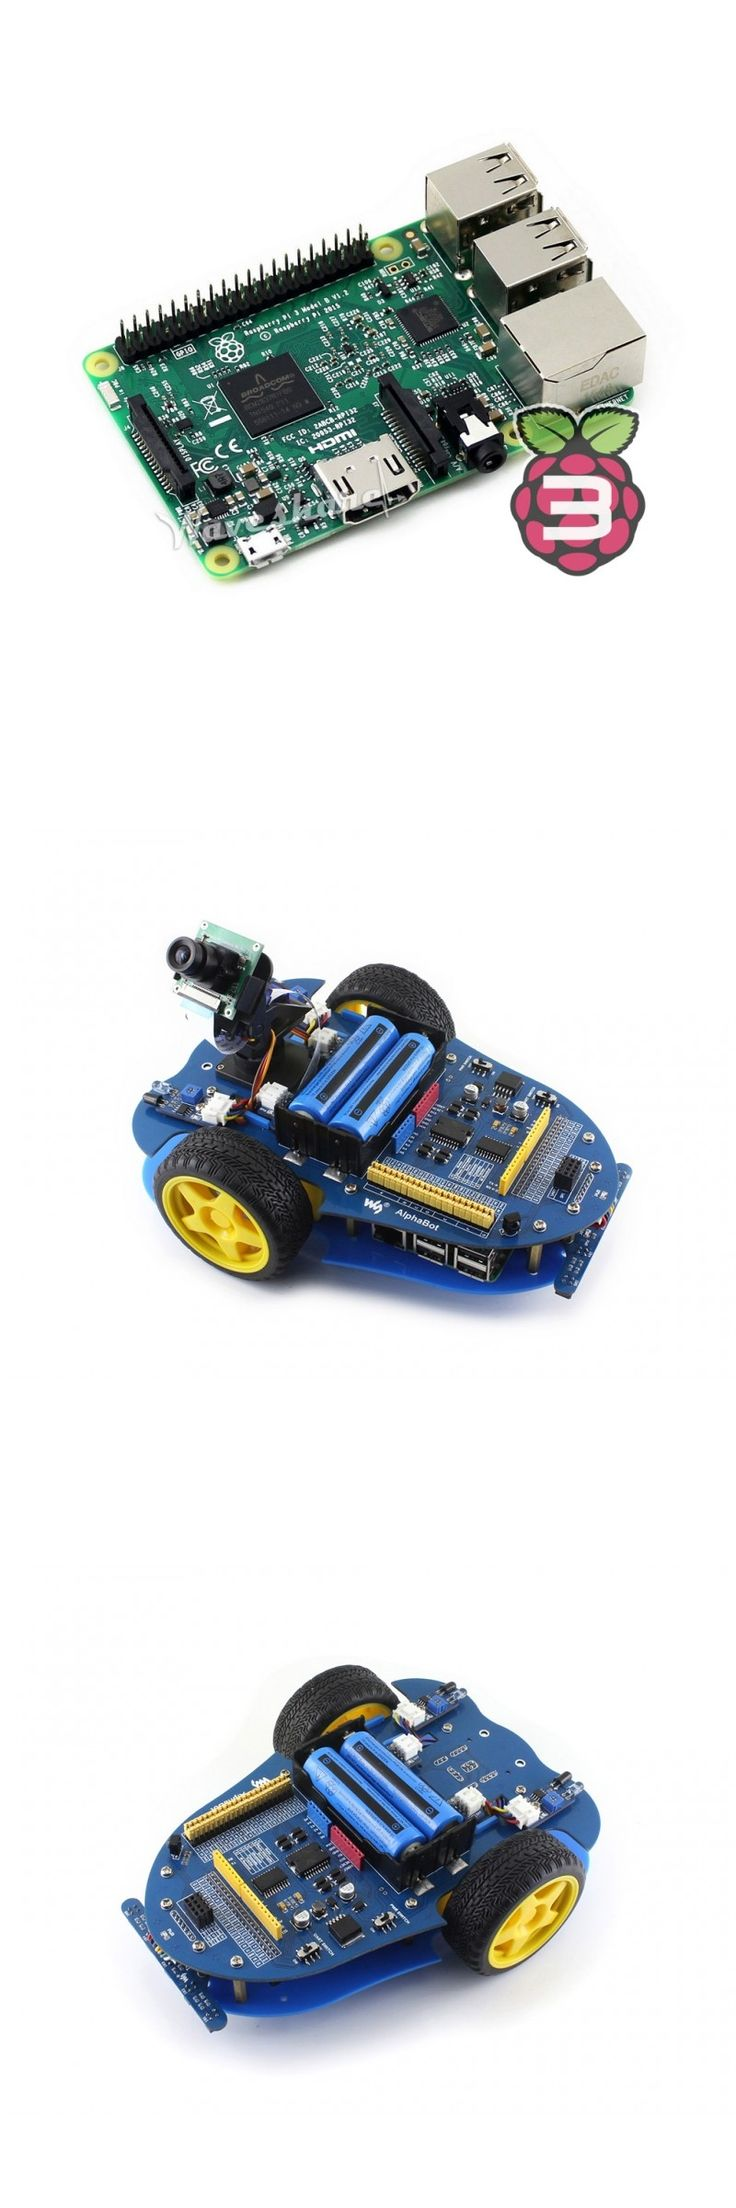 Waveshare AlphaBot-Pi Car Raspberry Pi Robot Building Kit RPi 3 B Mother Board Robotic Platform Camera Video for line tracking